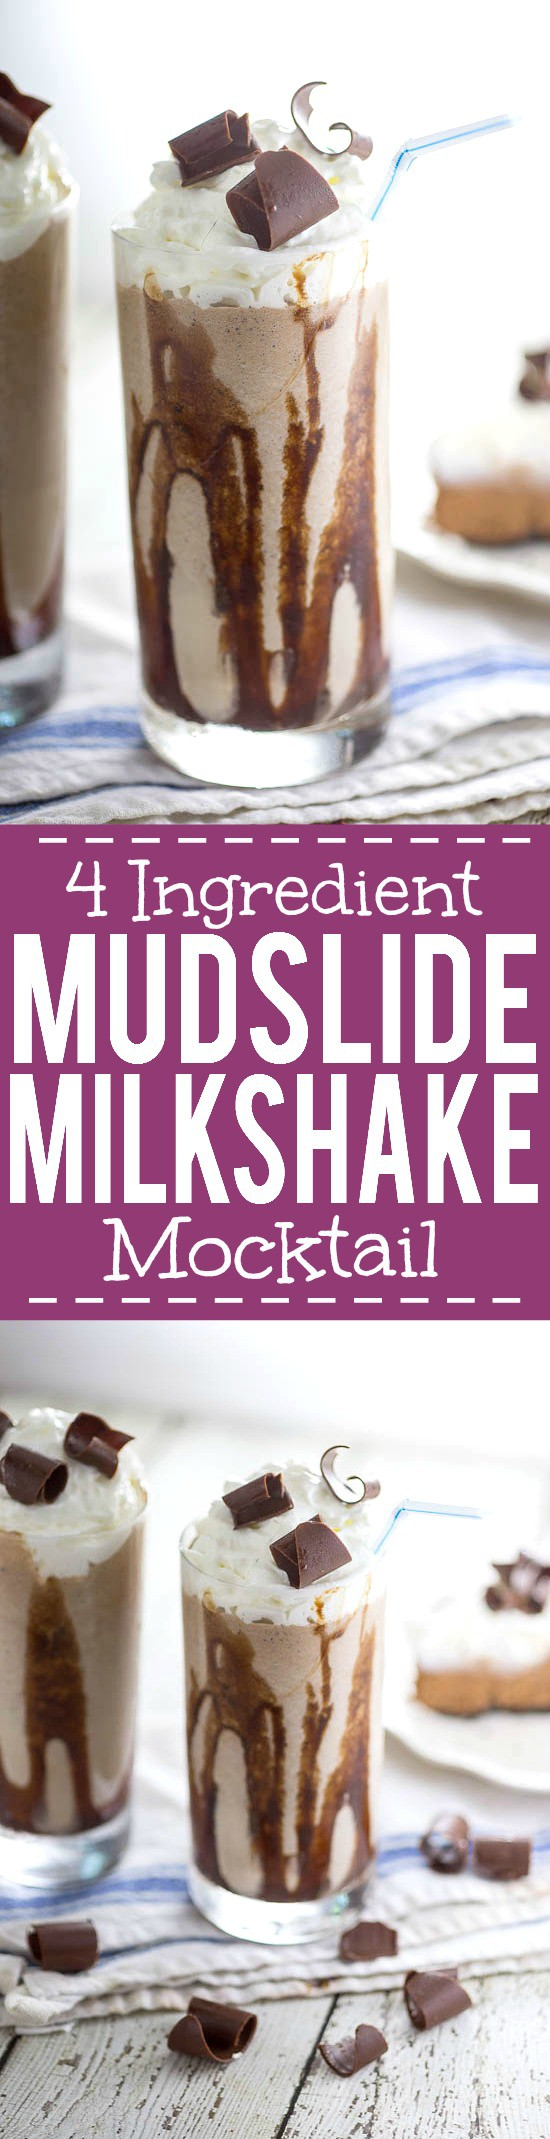 Mudslide Milkshake Mocktail Recipe - Calling all chocolate lovers! Everyone who loves chocolate will adore this quick and easy Mudslide Milkshake Mocktail recipe! Make it in just 10 minutes with 4 ingredients! Yum!